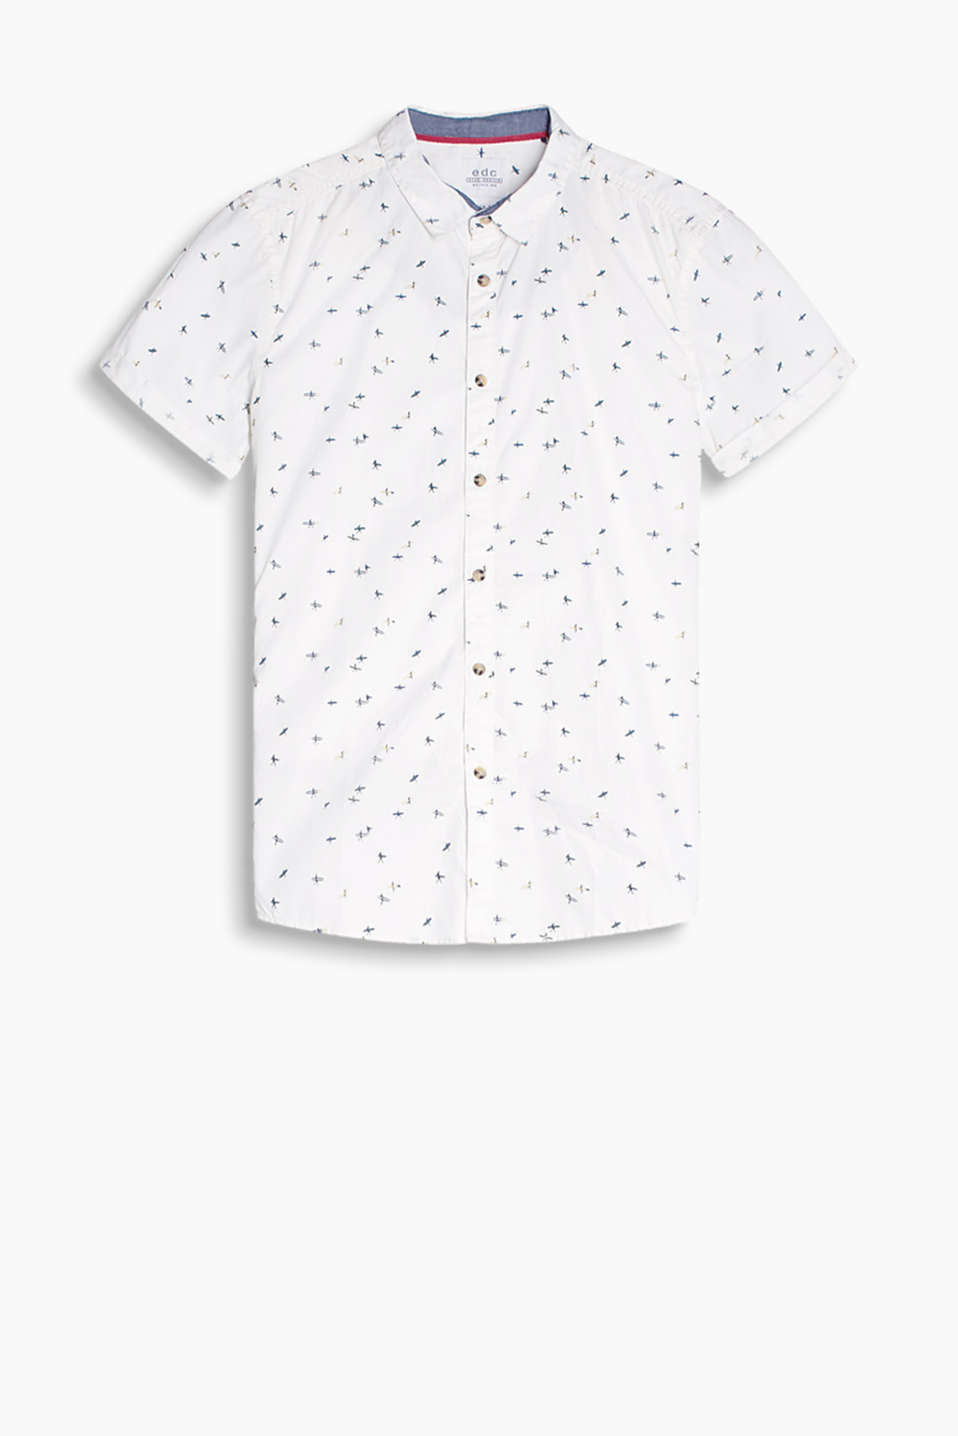 100% cotton: short sleeve shirt with a minimalist print